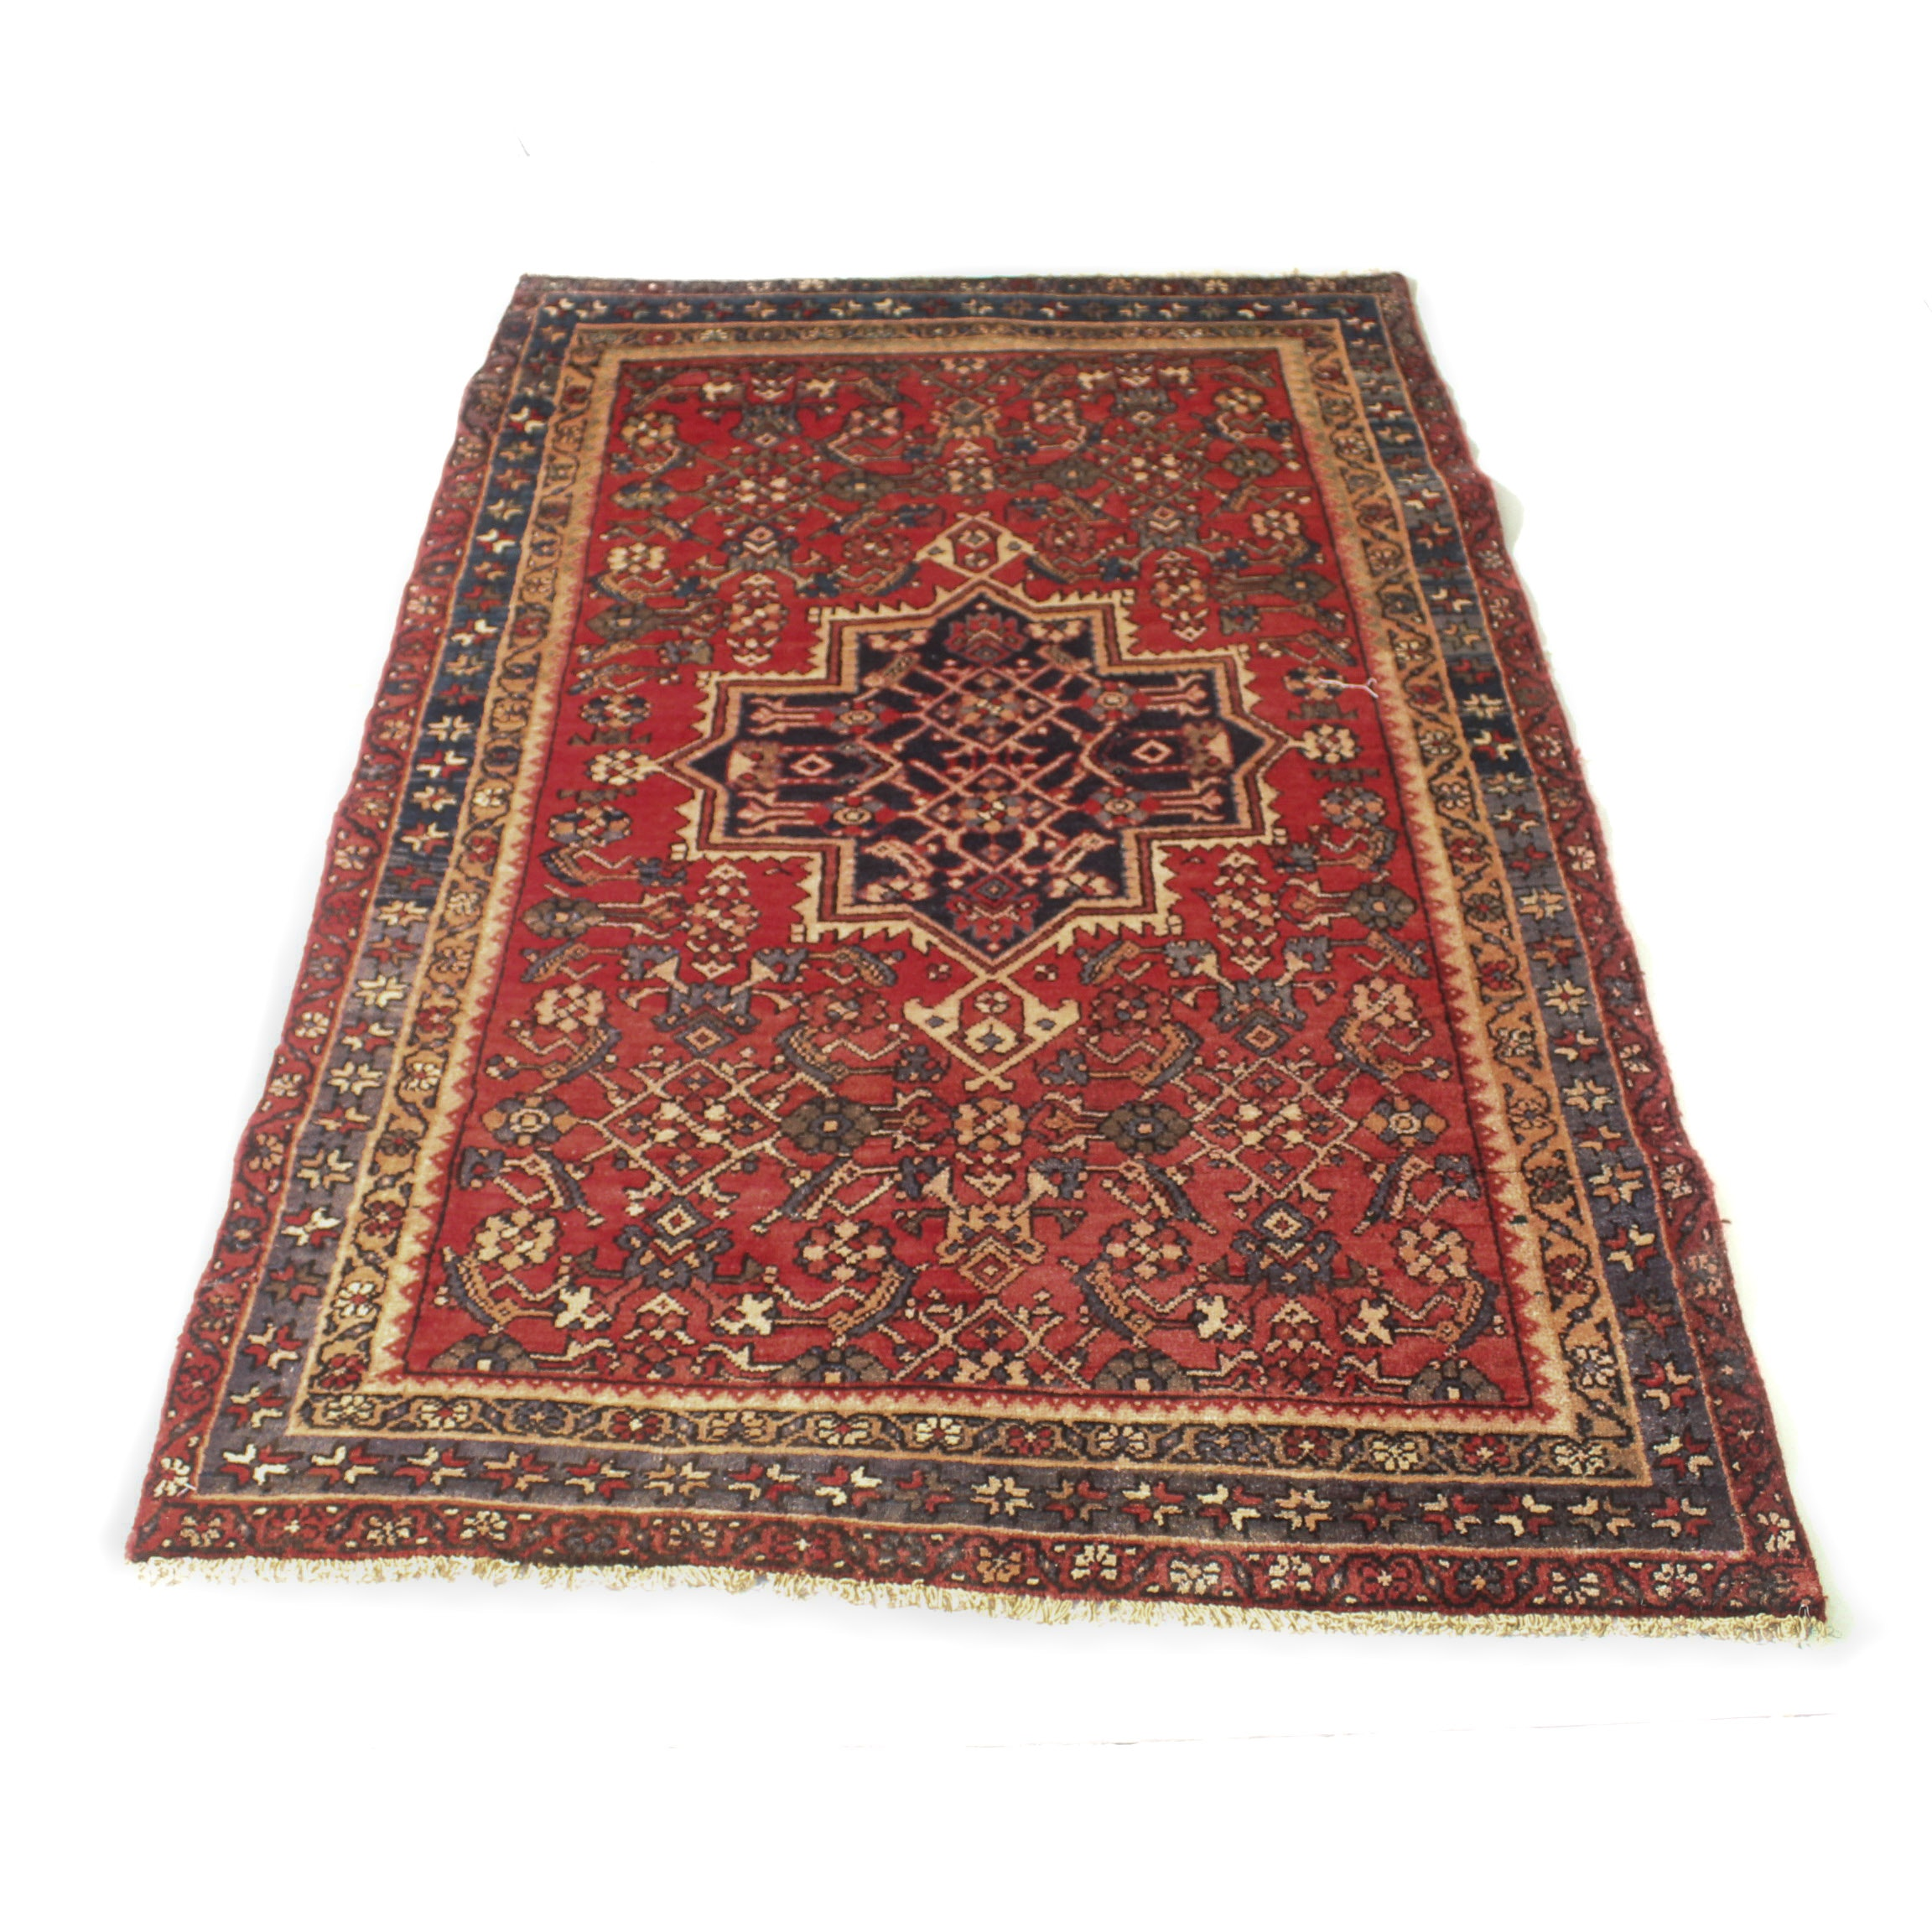 3'11 x 6'6 Hand-Knotted Northwest Persian Rug